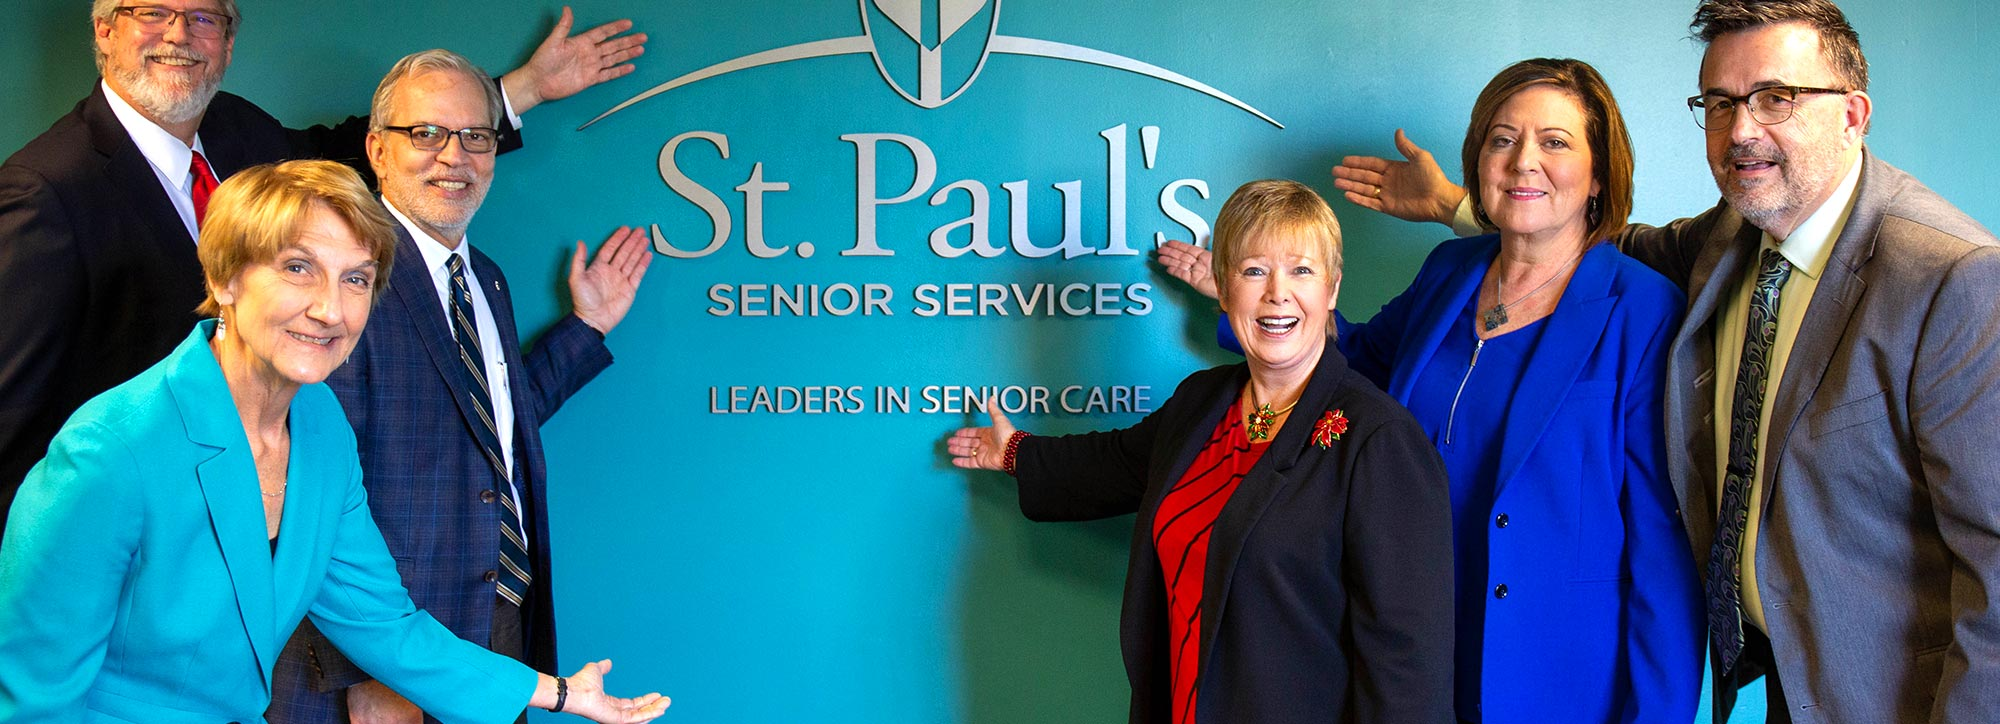 About St. Paul's Senior Services